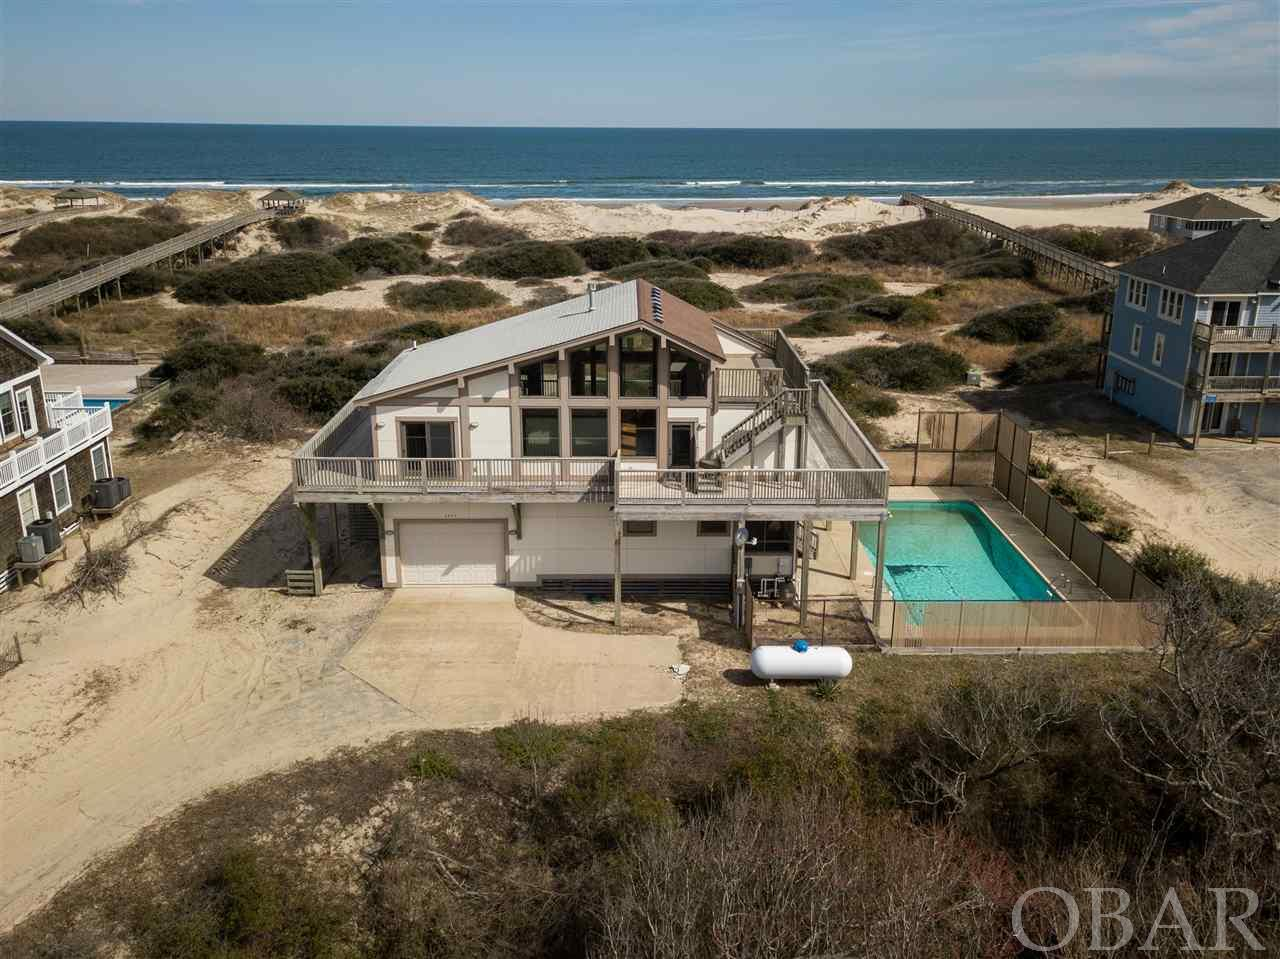 Tremendous Oceanfront Homes For Sale In Corolla Matt Huband Obx Realty Beutiful Home Inspiration Aditmahrainfo